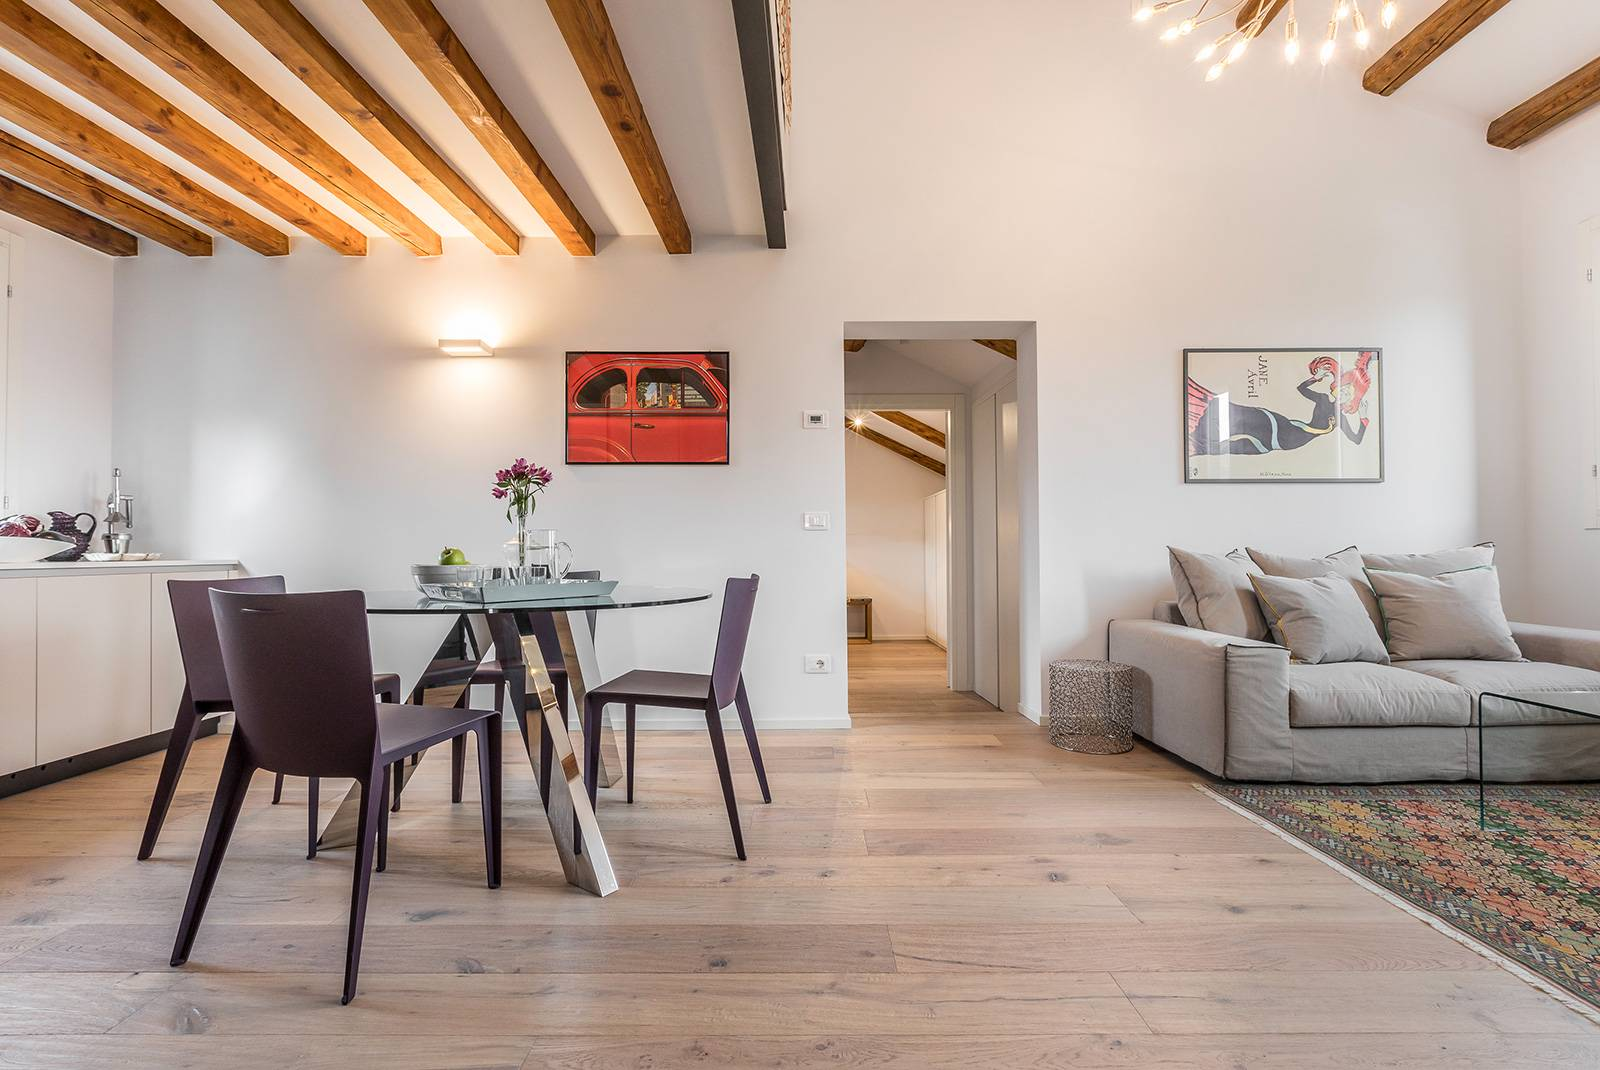 the San Trovaso Terrace is a stylish brand new apartment with designer interiors